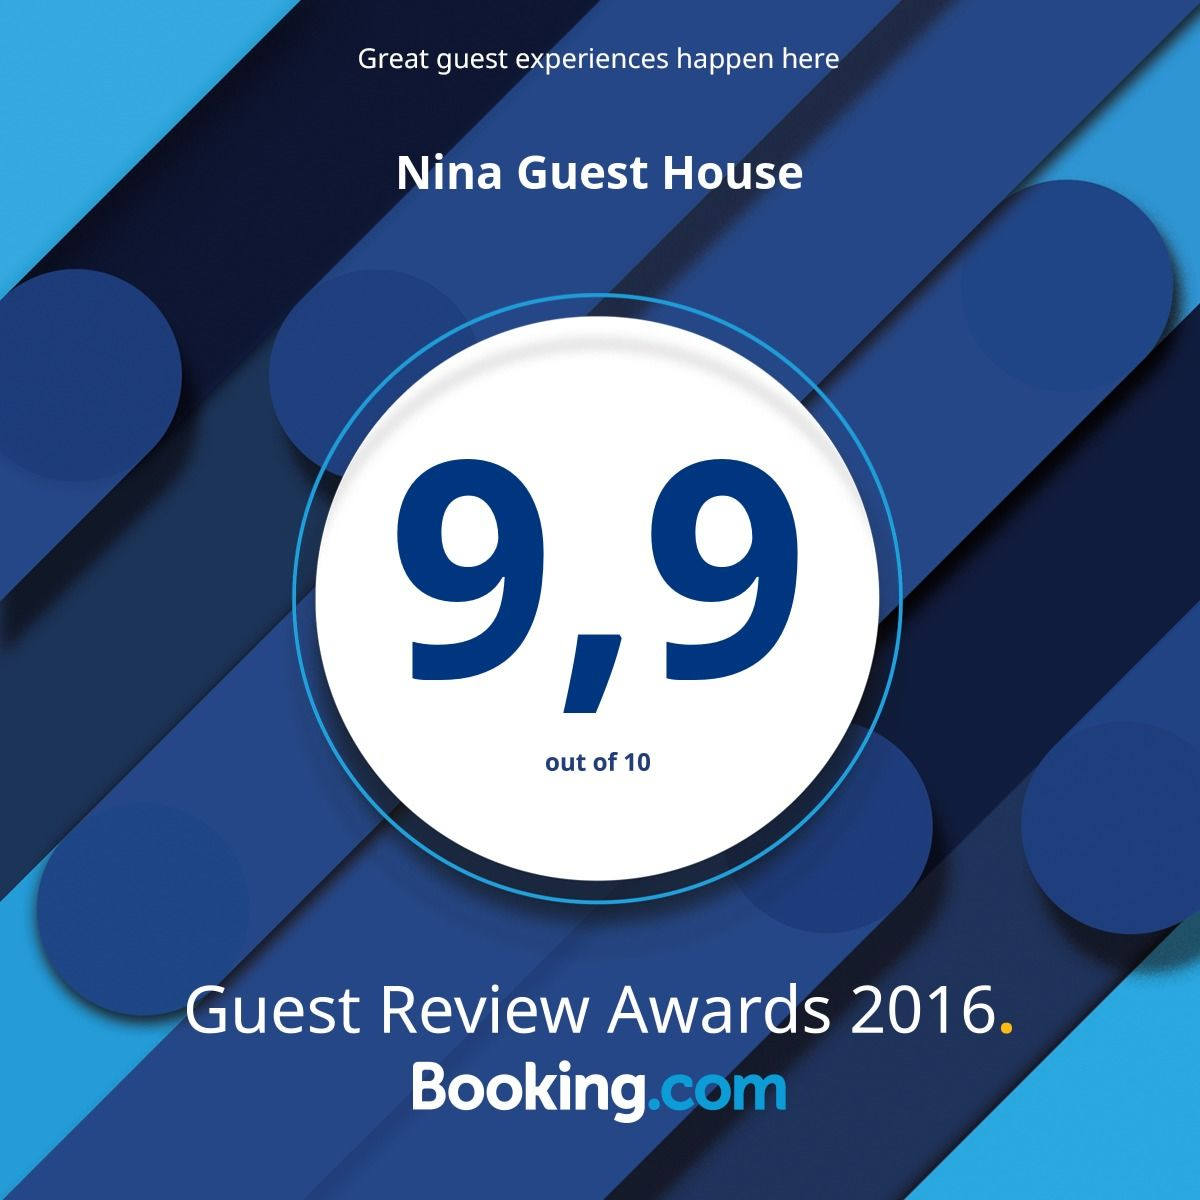 Avarage Rating Vacation Rental Home Nina Guest House on Booking.com